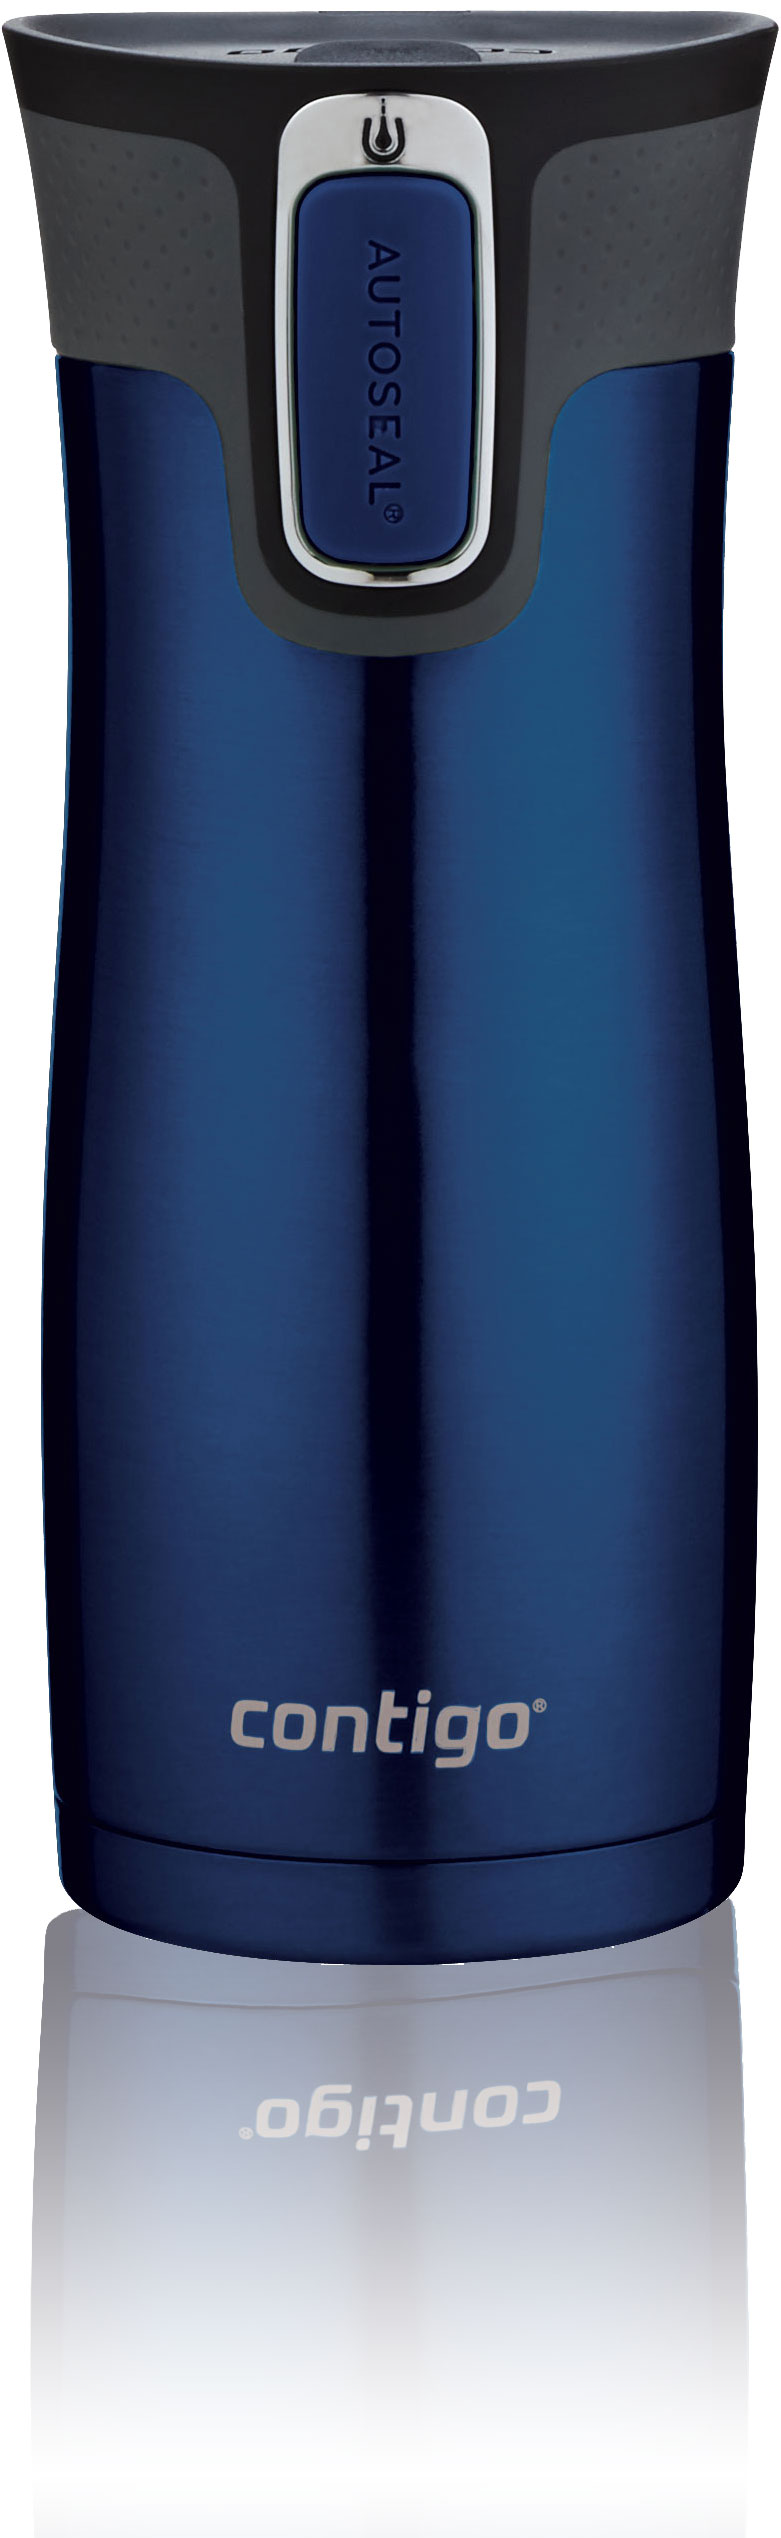 Contigo - WestLoop 2.0 - 16 Oz -Midnight Blue   SKU: 70477